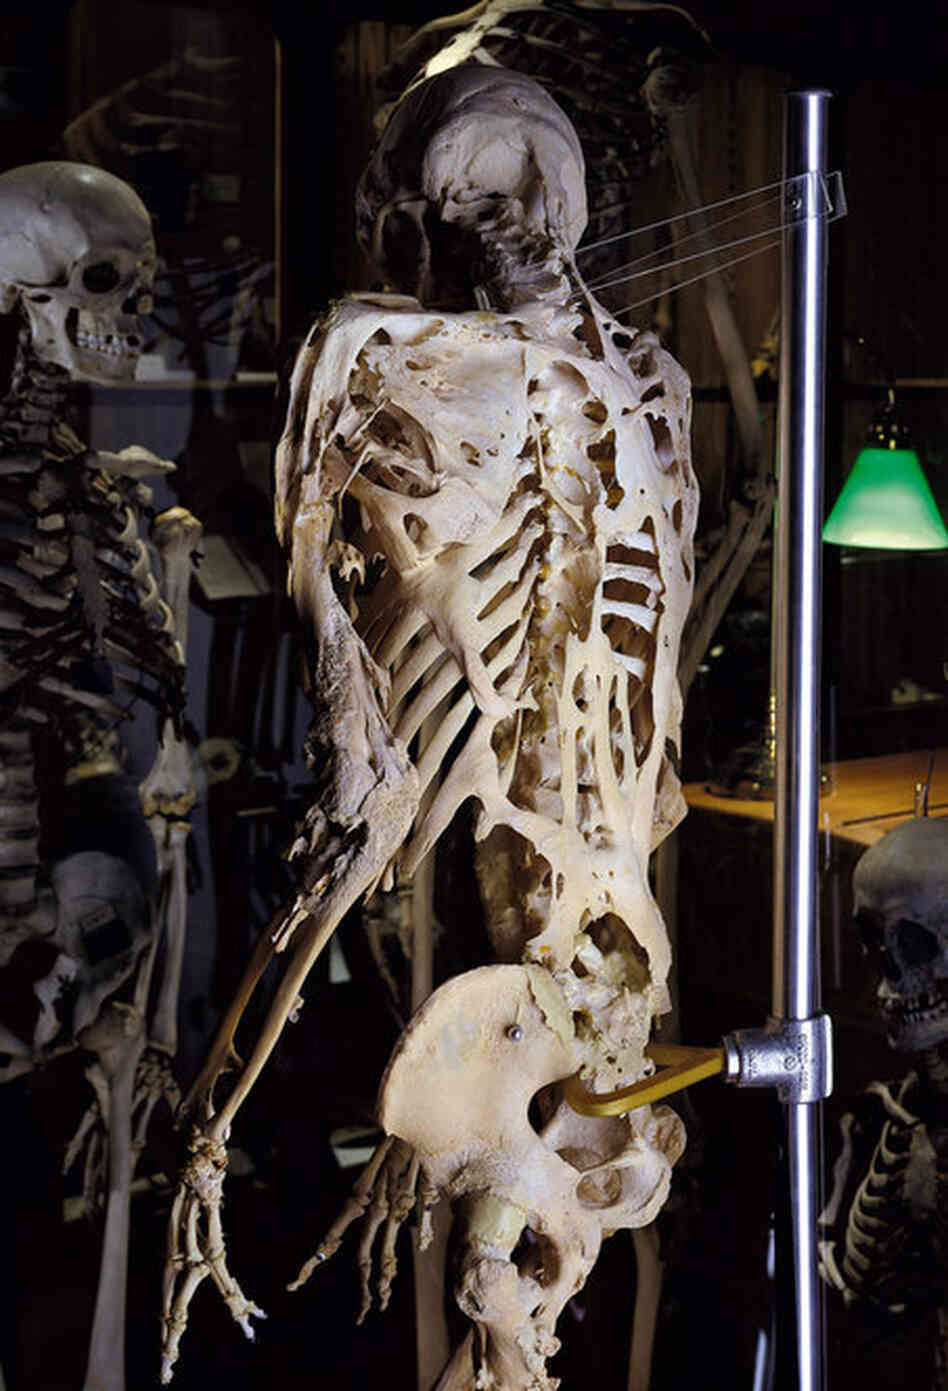 The skeleton of Harry Raymond Eastlack, a 39-year-old male with fibrodysplasia ossificans progressiva, or FOP — an extremely rare inherited disorder in which bone forms outside the skeleton, immobilizing the individual. Harry, Scott Lindgren, 1990